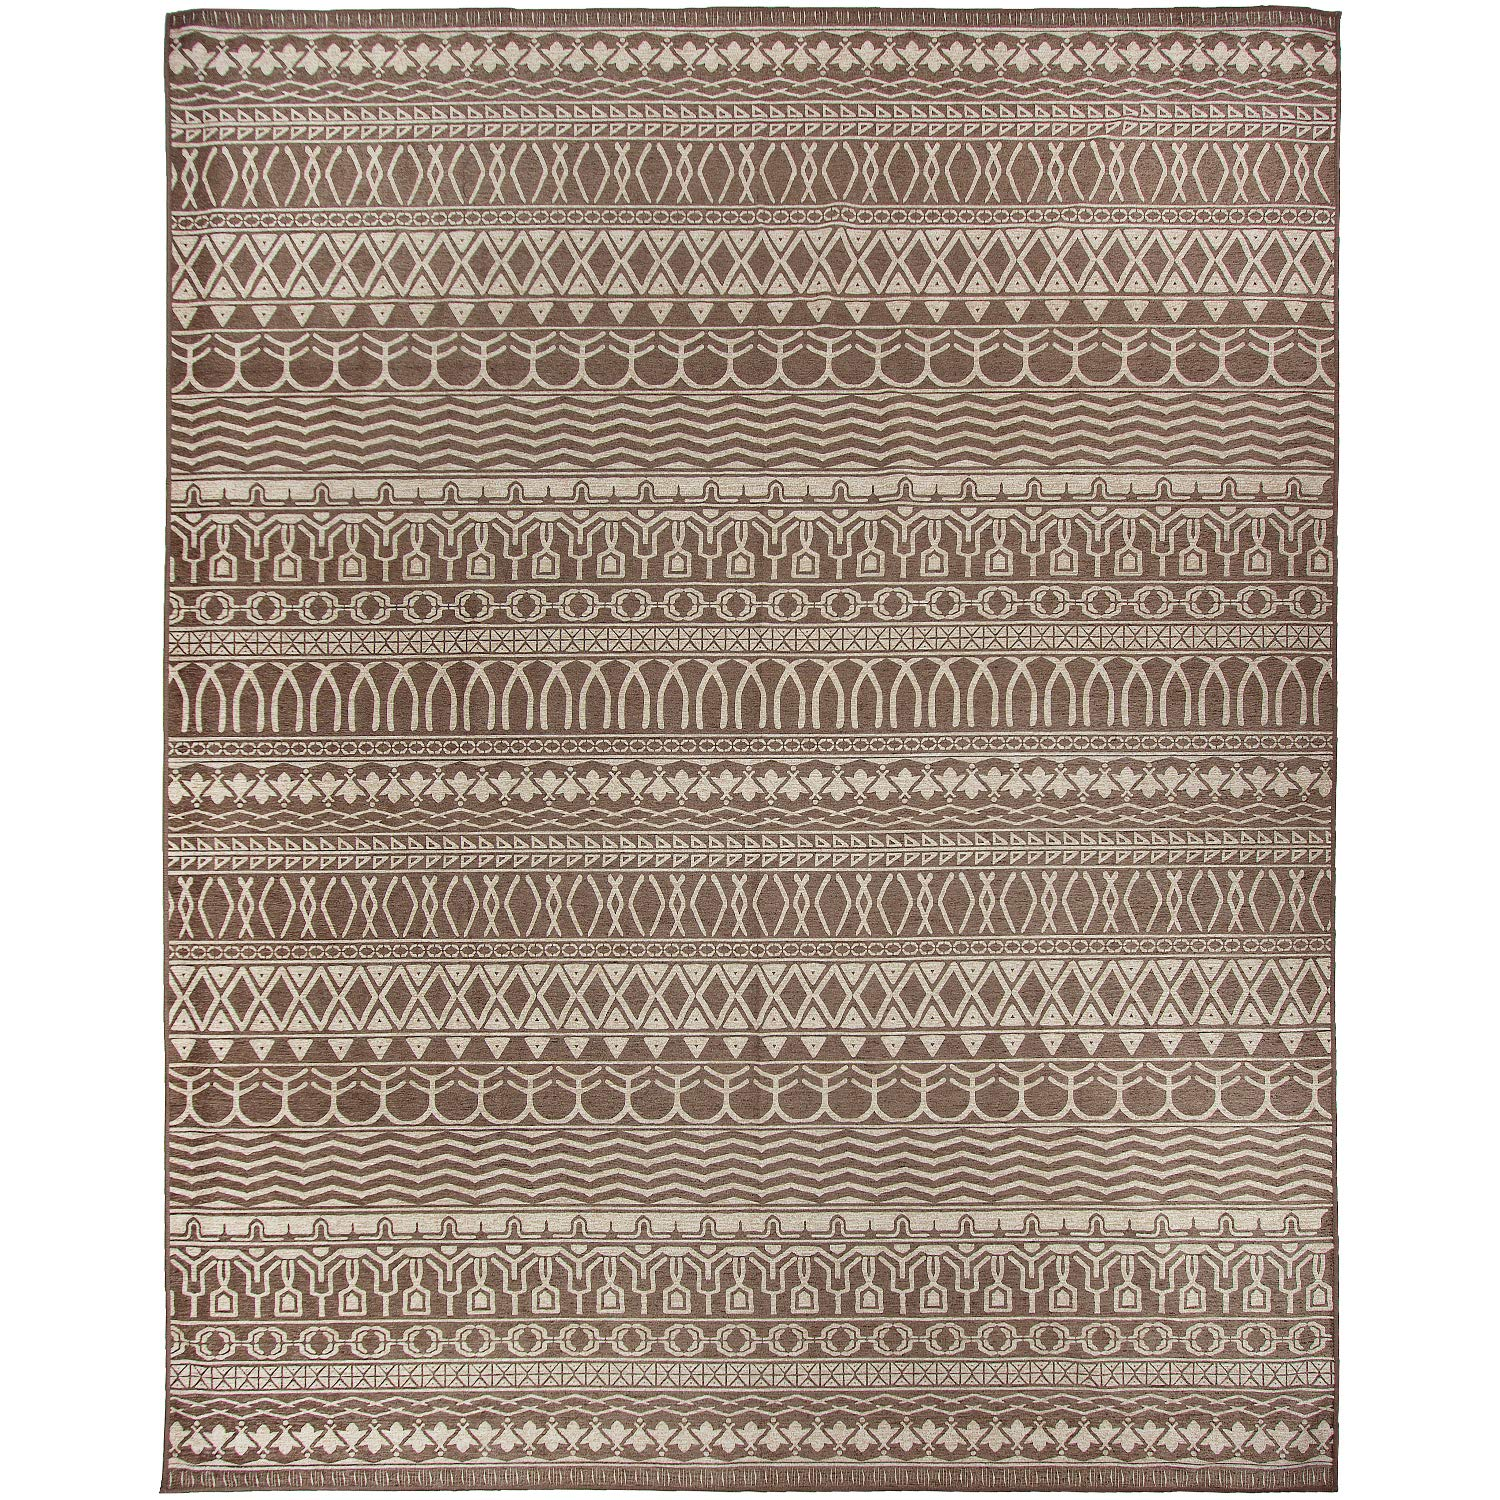 RUGGABLE Washable Stain Resistant Indoor/Outdoor, Kids, Pets, and Dog Friendly Area Rug, 8'x10', Cadiz Espresso